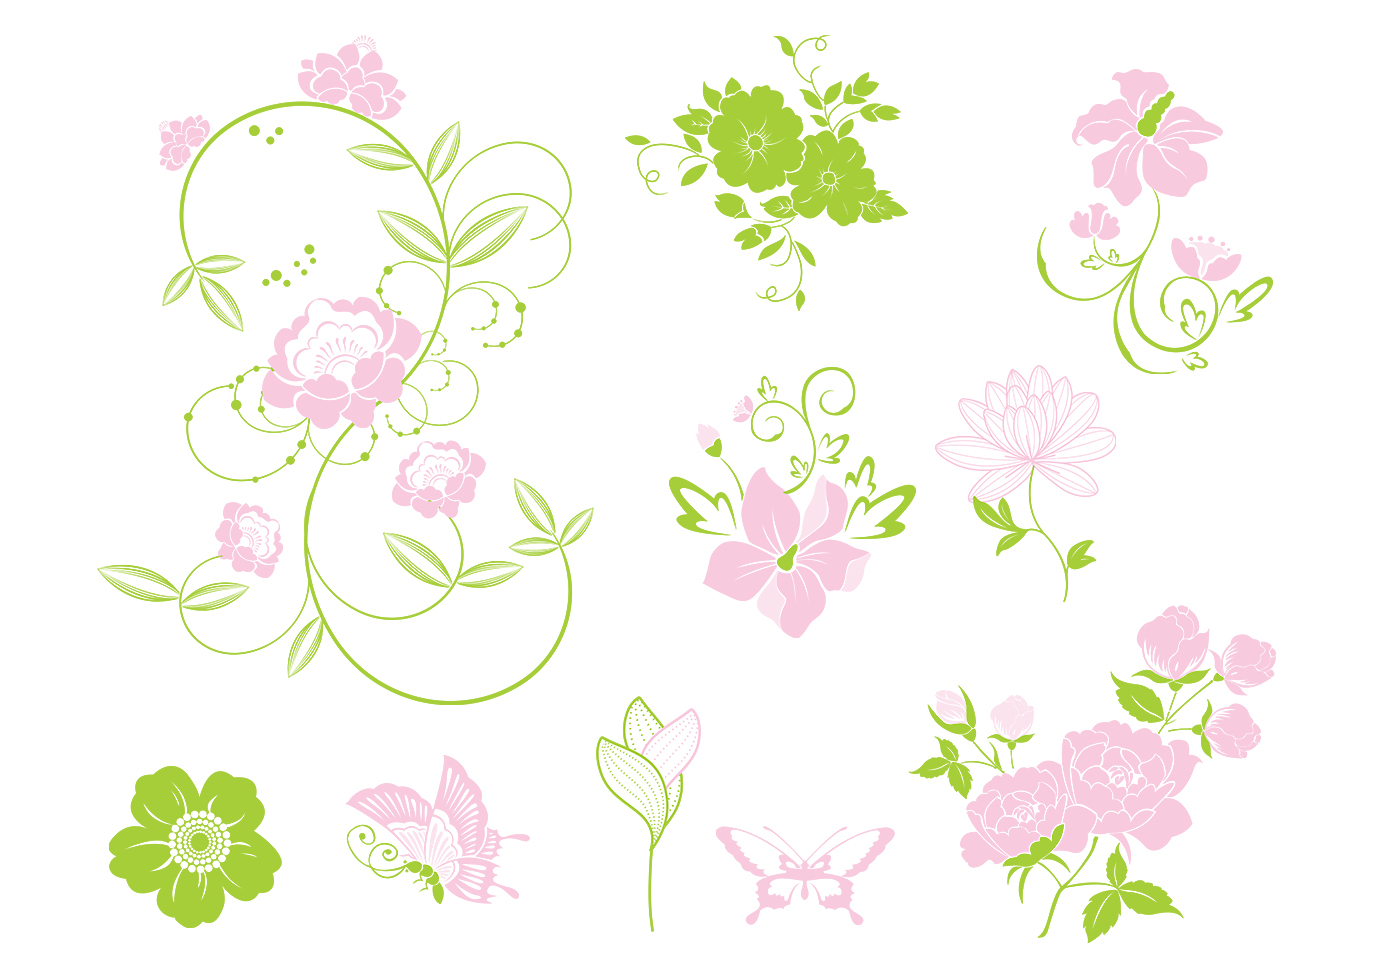 Pink And Green Floral Brush Pack Free Photoshop Brushes At Brusheezy